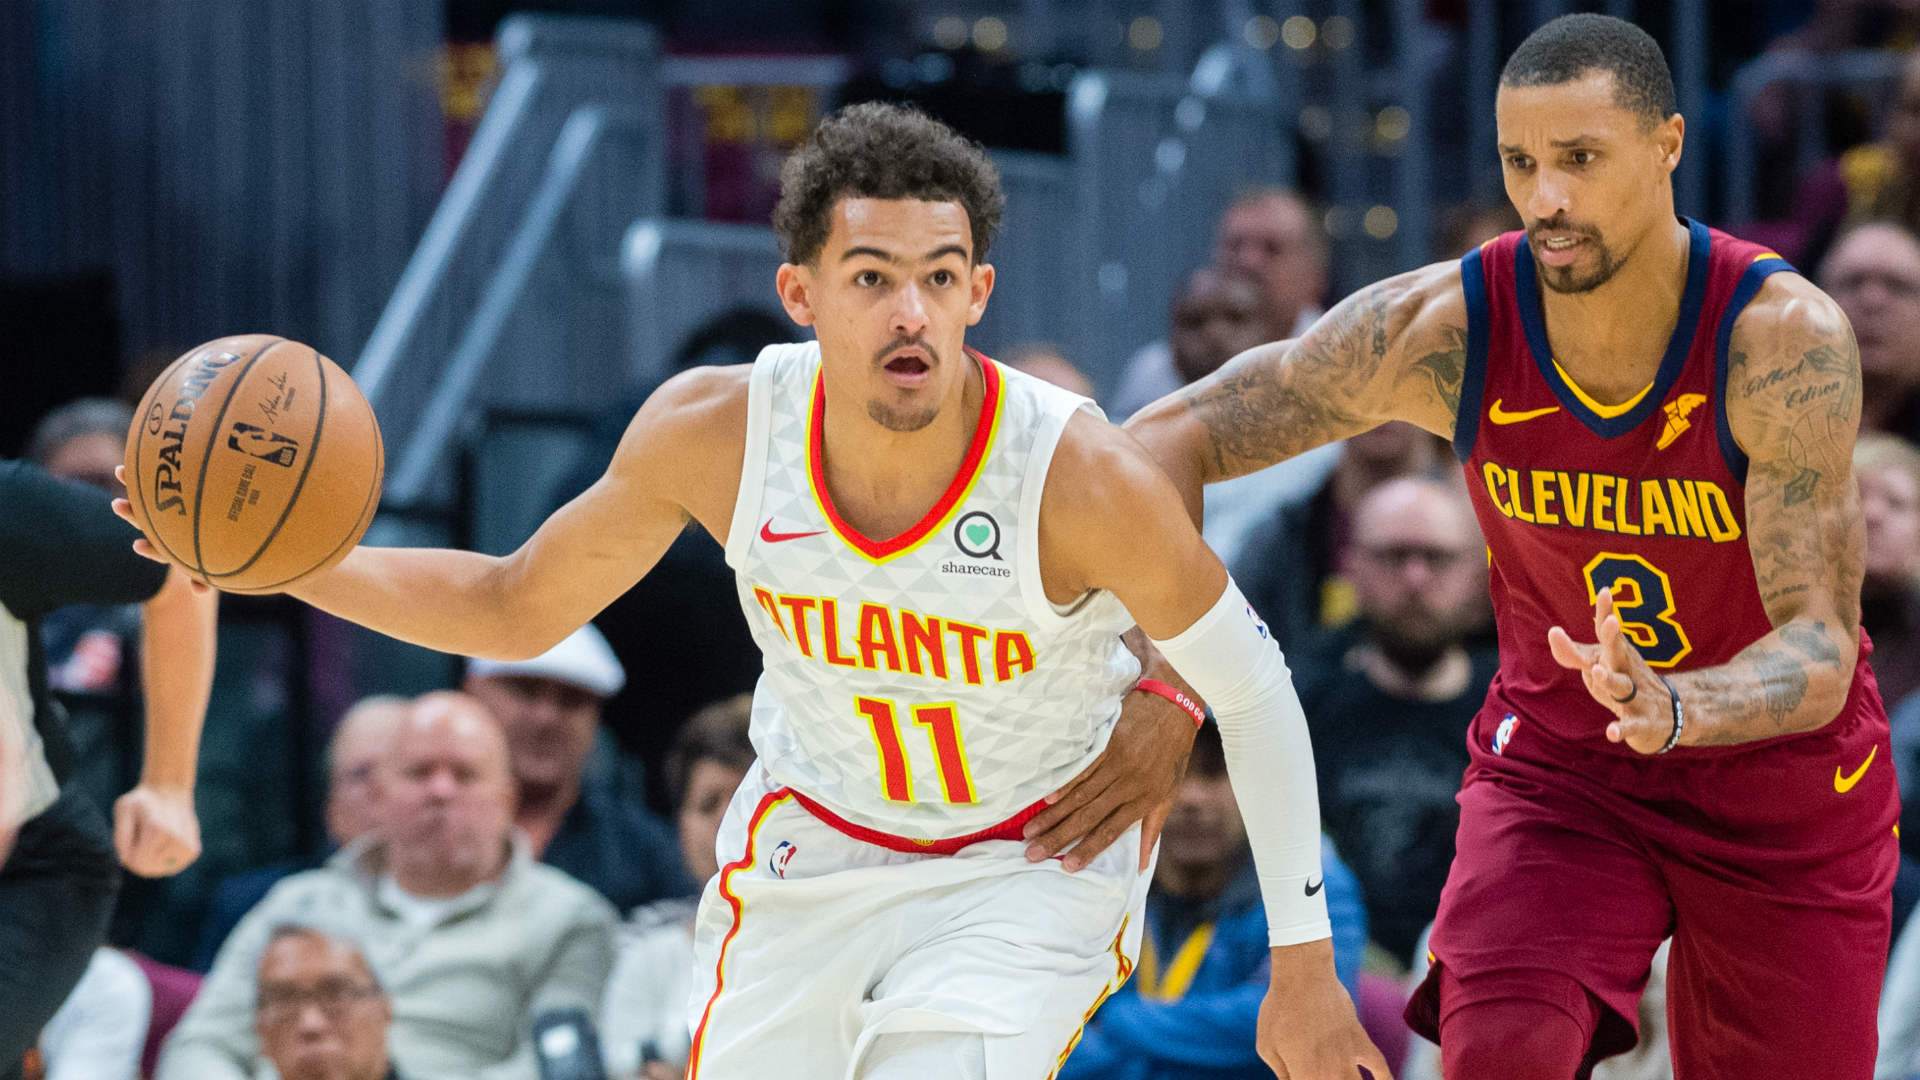 Trae-young-10222018-us-news-getty-ftr_qjrh814lfaoi1faunlm11xg1f